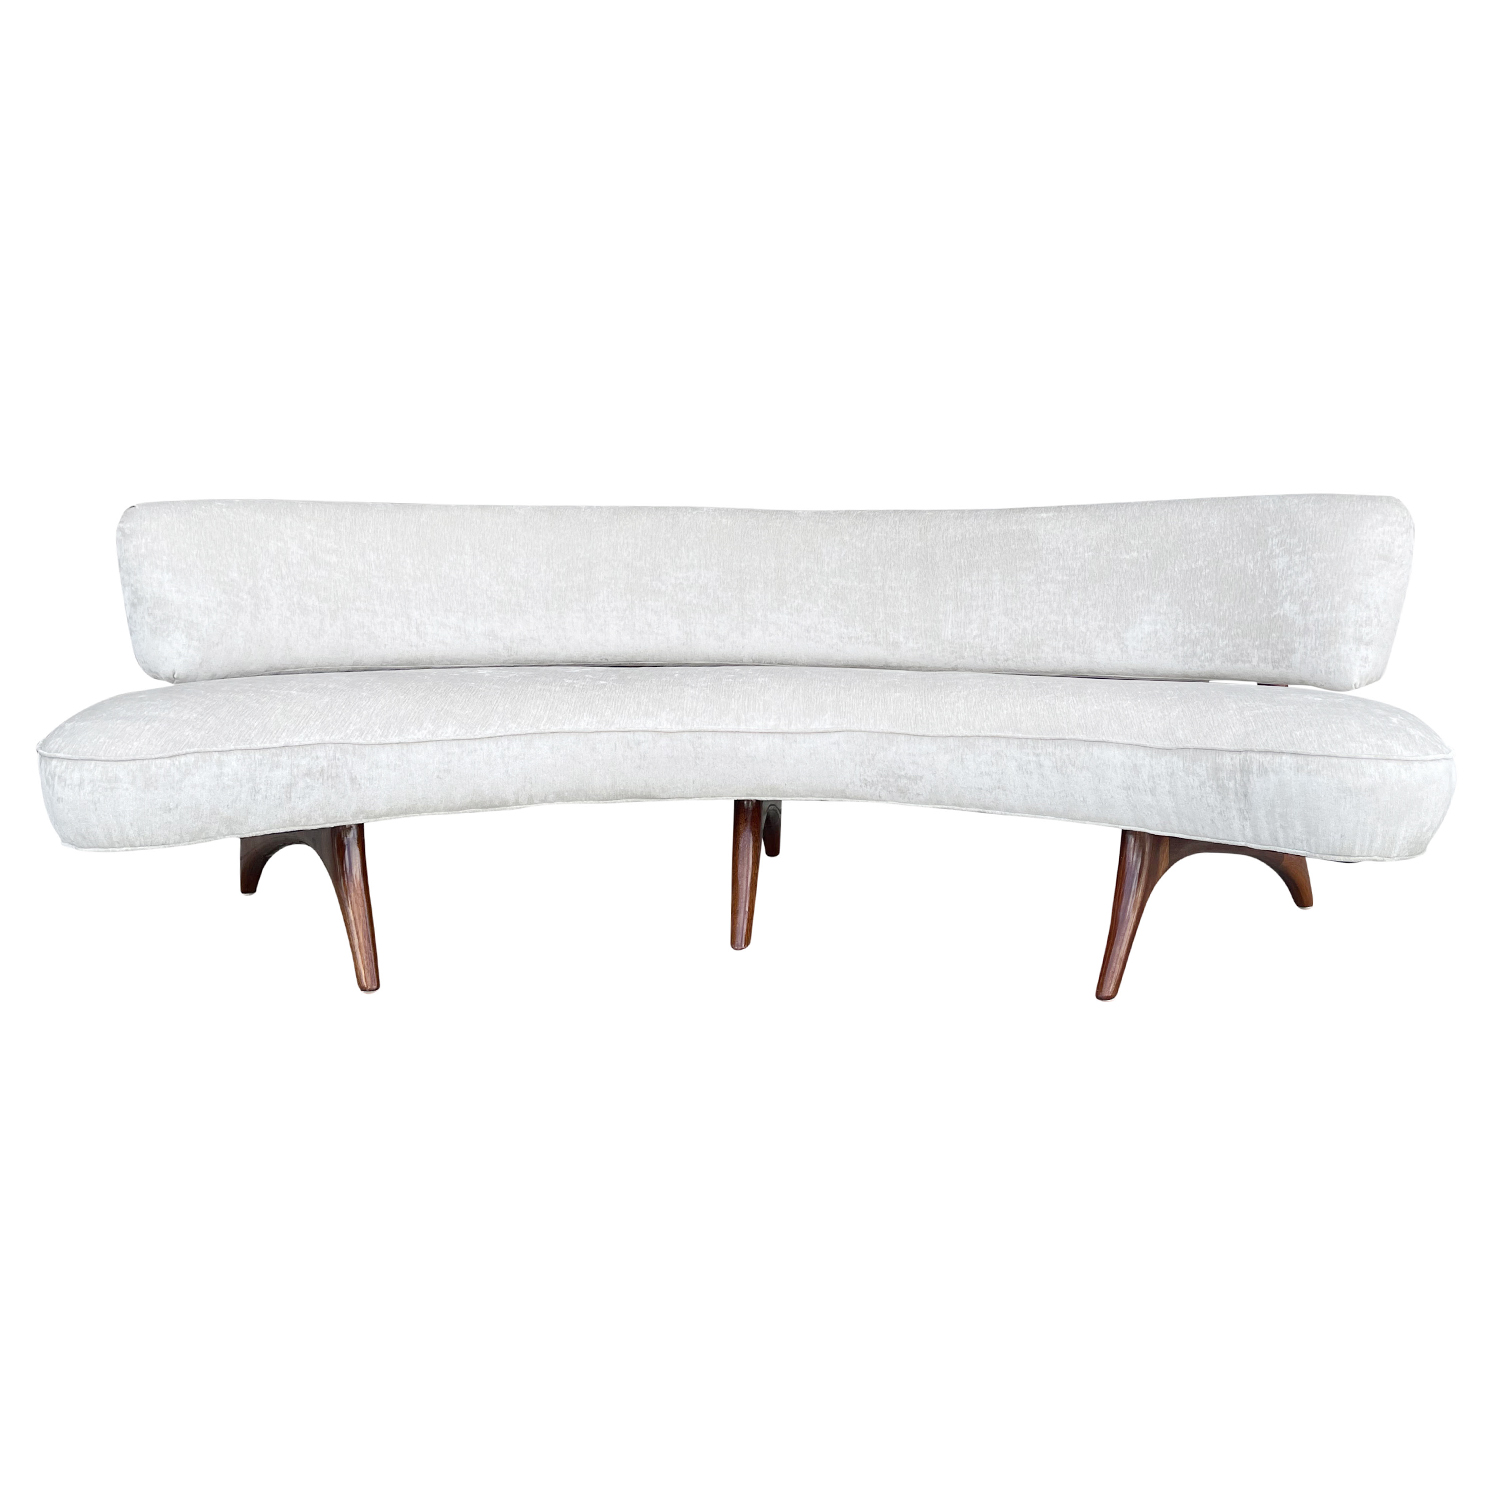 20th Century American Floating Settee – Curved Four Seater Sofa by Vladimir Kagan